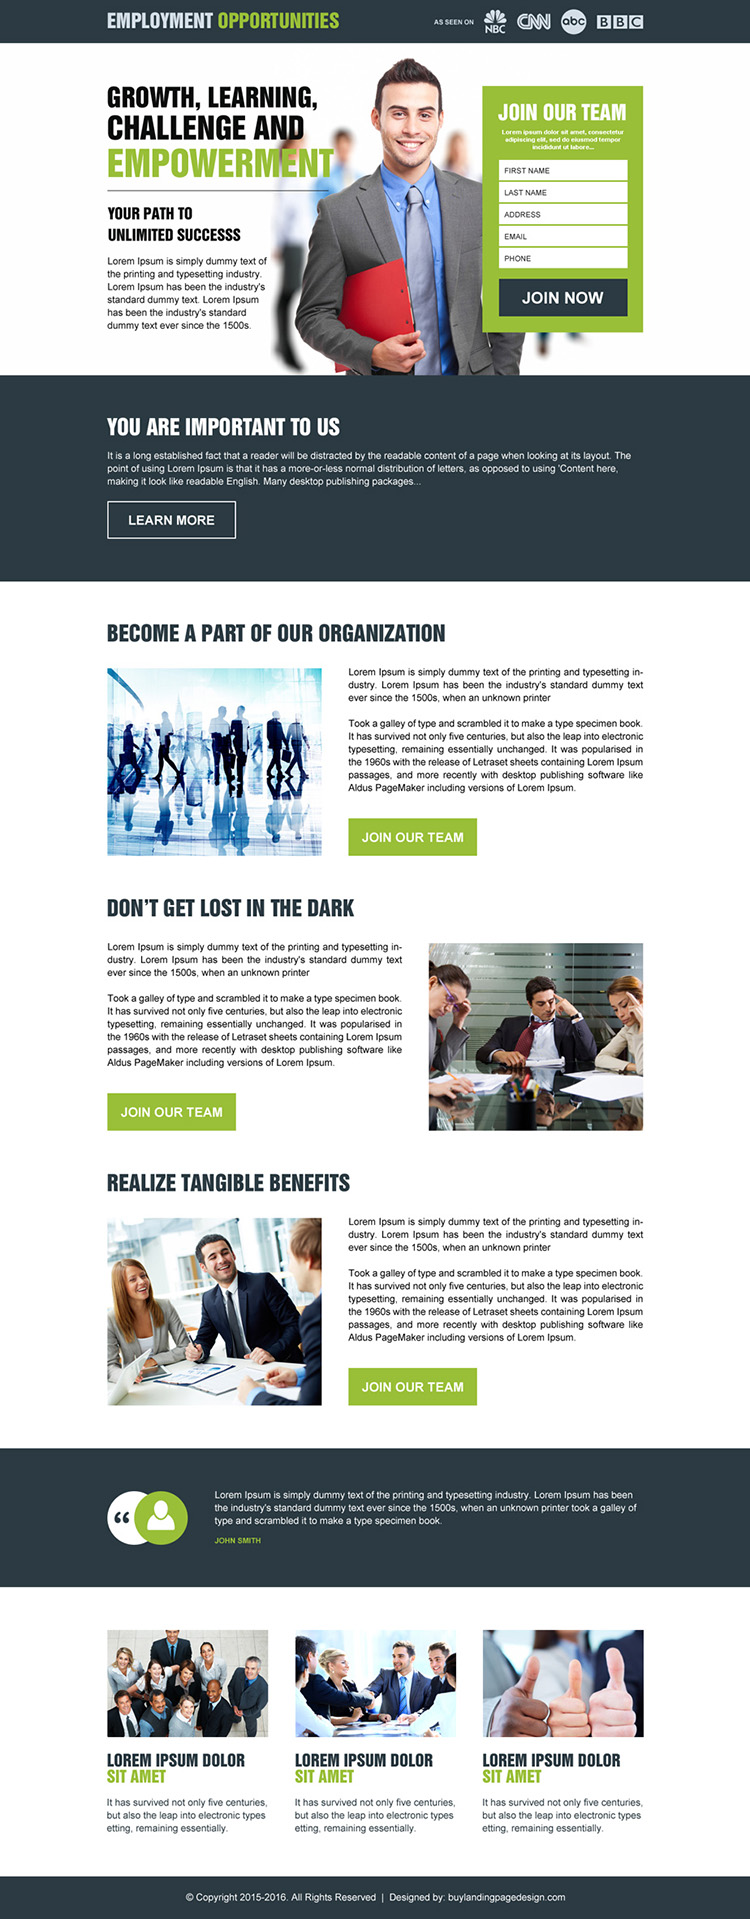 employment opportunity responsive lead generating landing page design